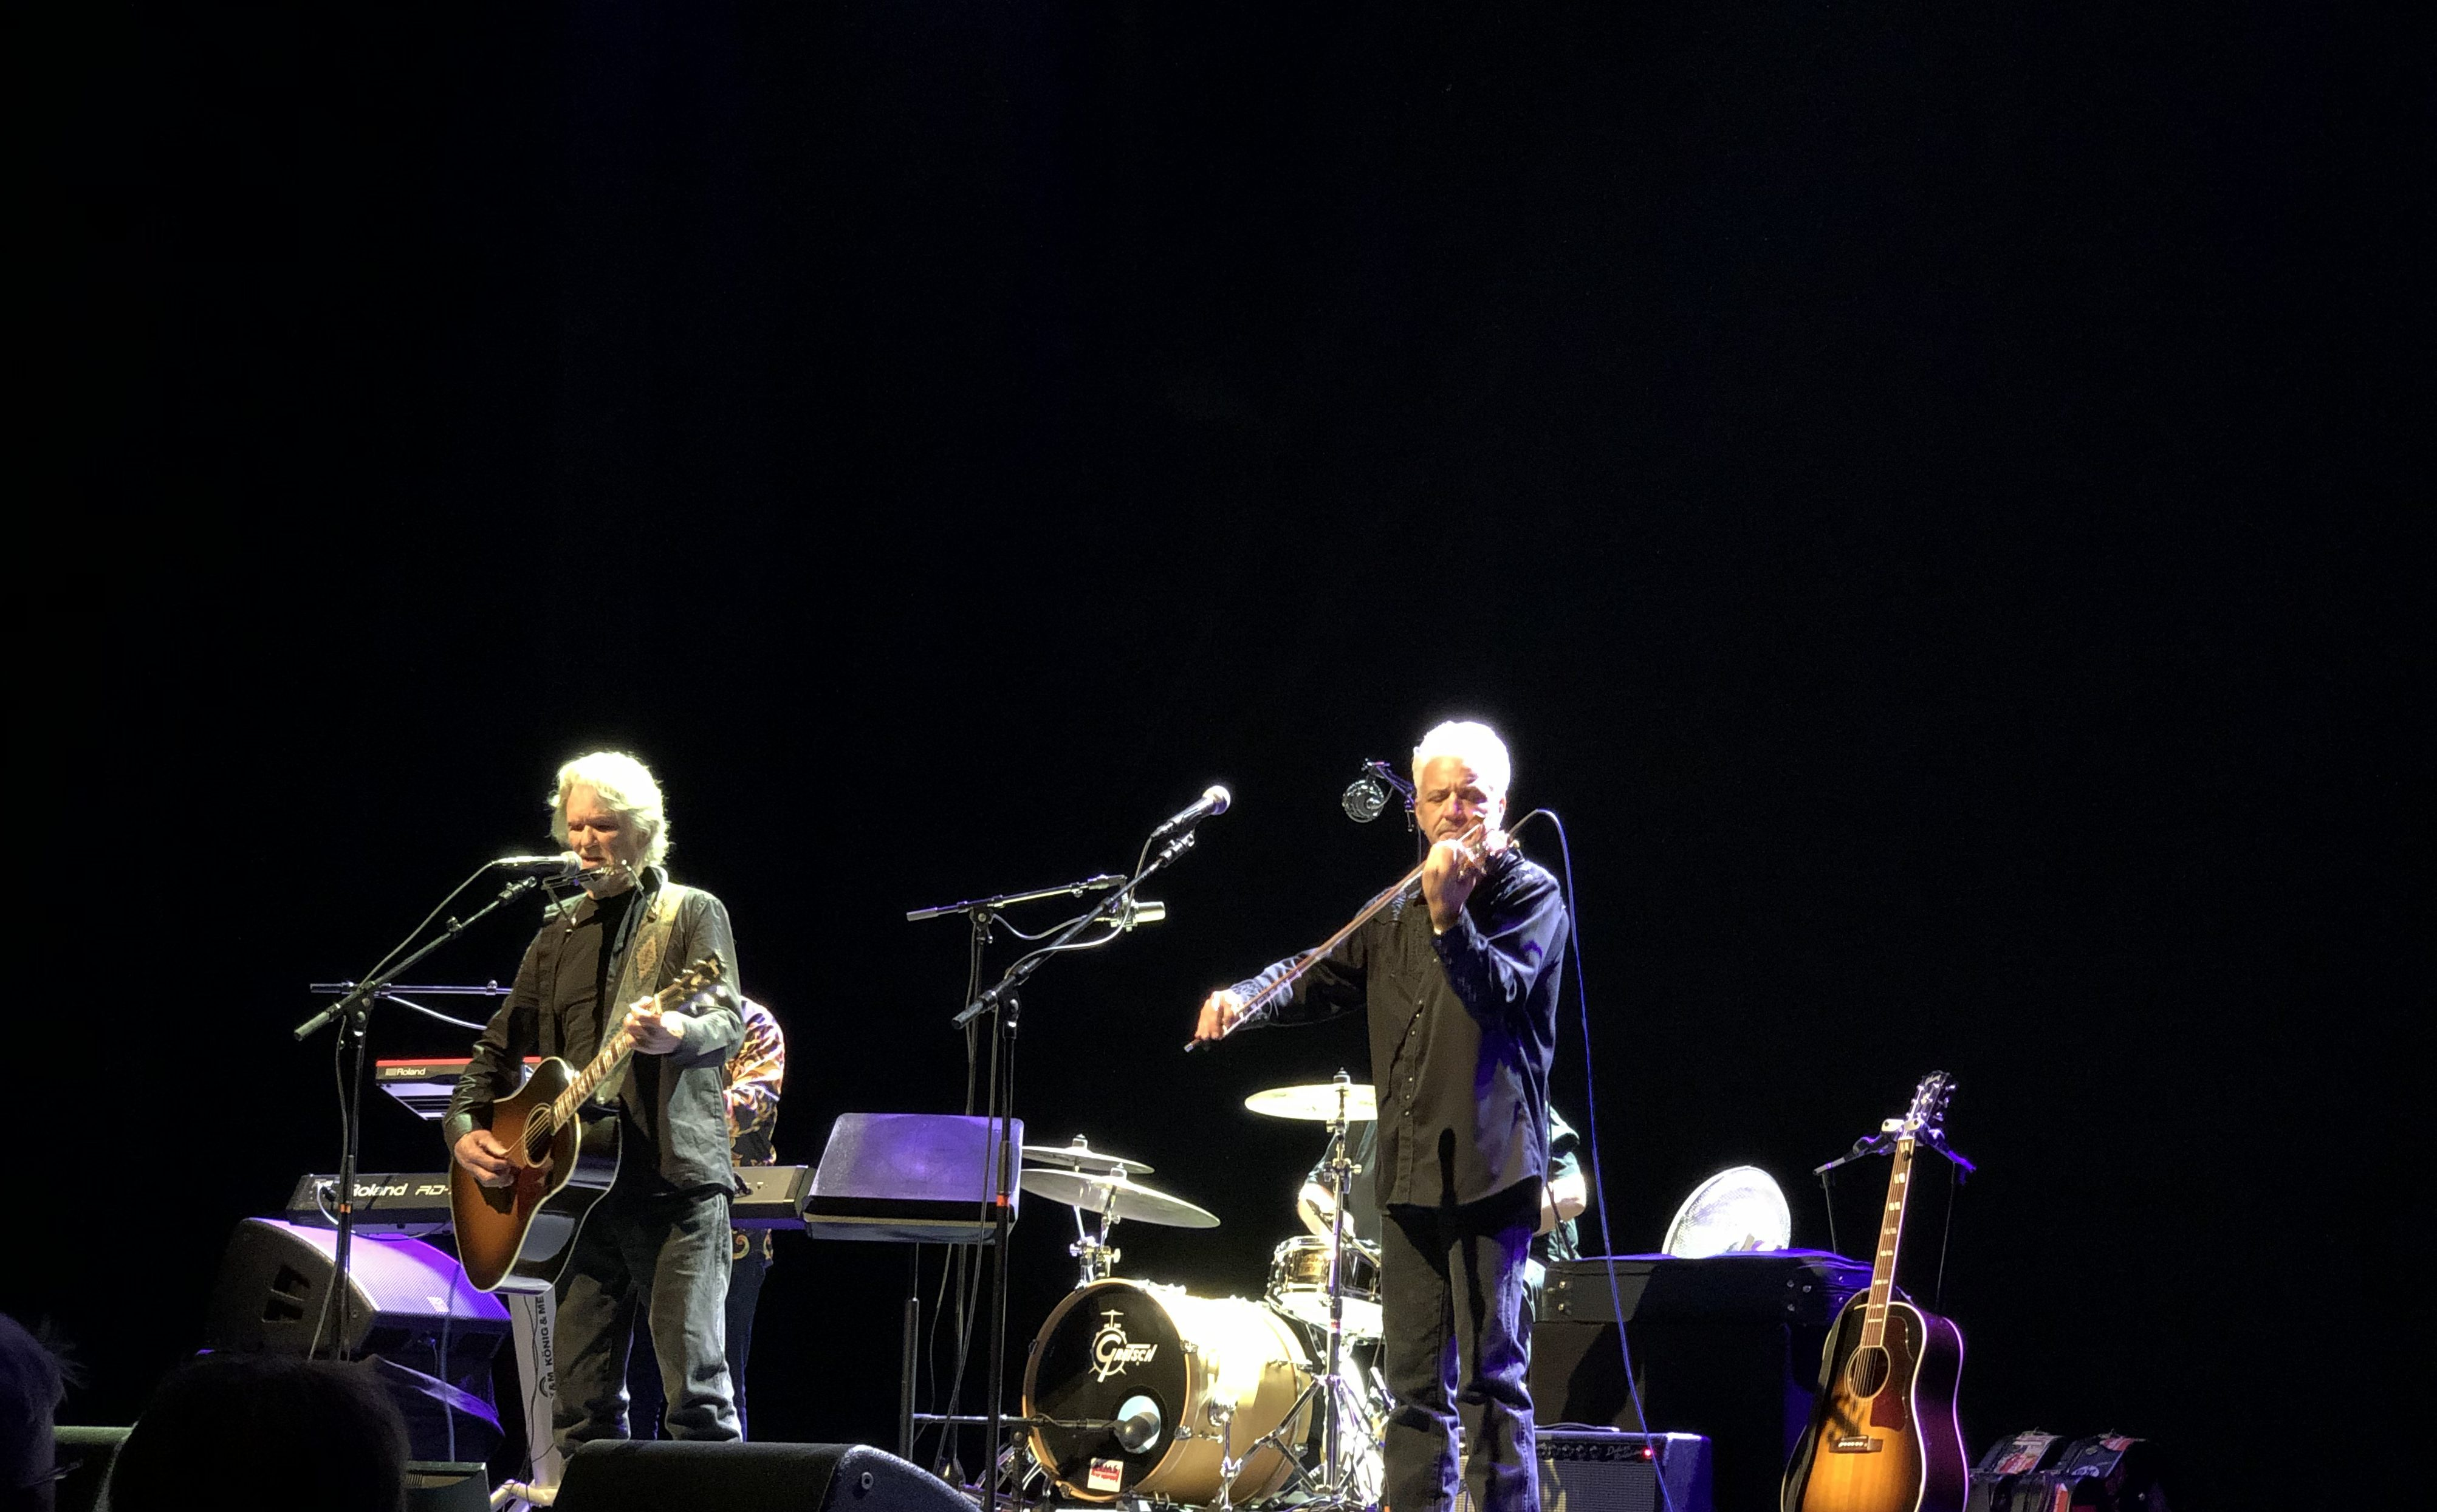 Concertreview: Kris Kristofferson & The Strangers – Help Me Make It Through The Night